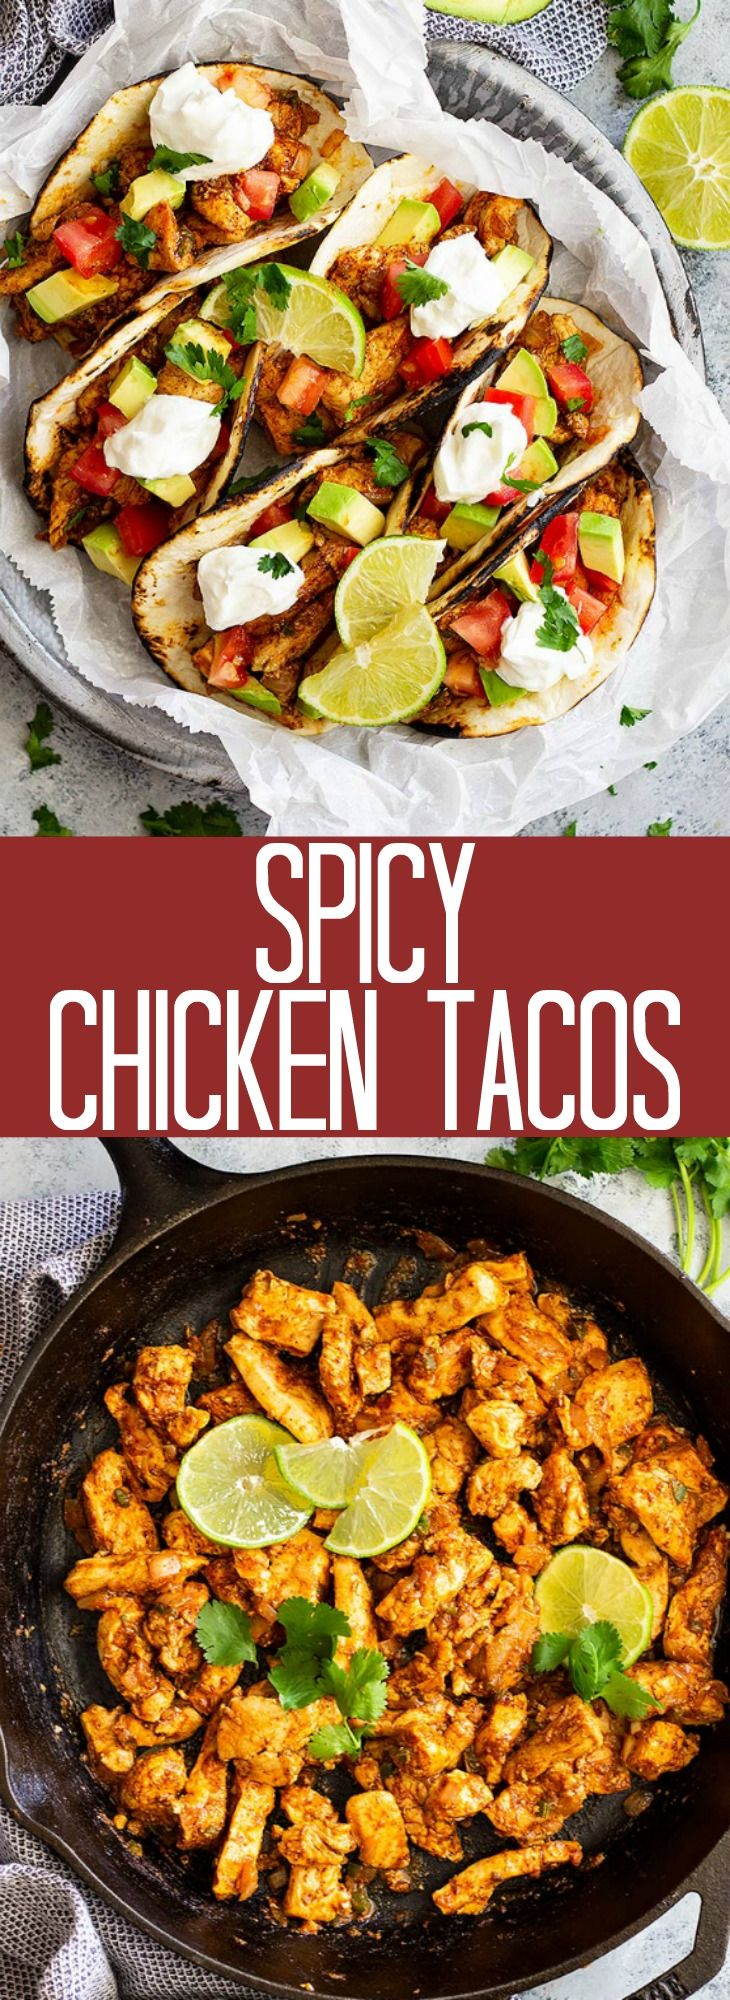 Spicy Chicken Tacos   Countryside Cravings